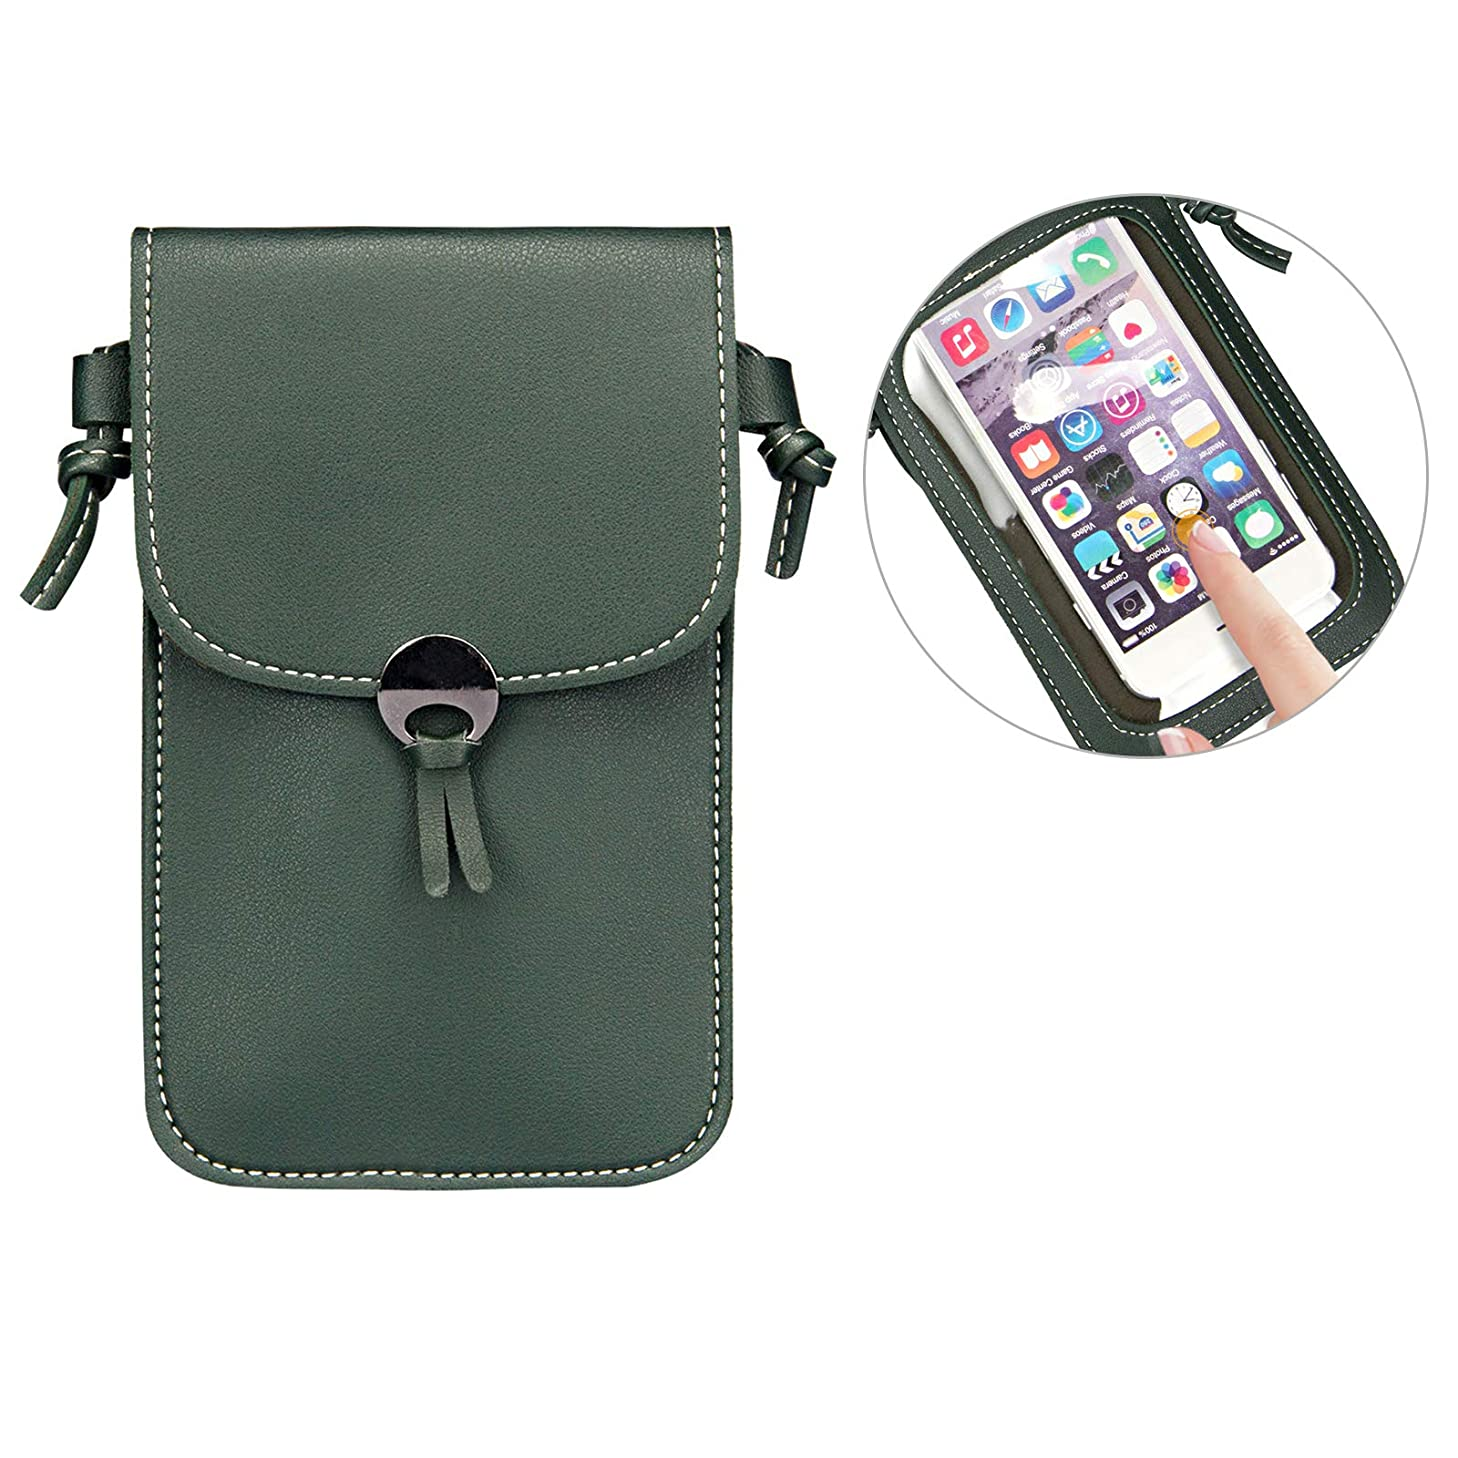 Cellphone Leather Crossbody Bag, Techcircle 2 Layers Pouch Wallet with Touch Screen Window and Detachable Shoulder Strap for iPhone 8 Plus/Xs, Samsung Galaxy S9 / S7 Edge, 5.8 inch, Dark Green